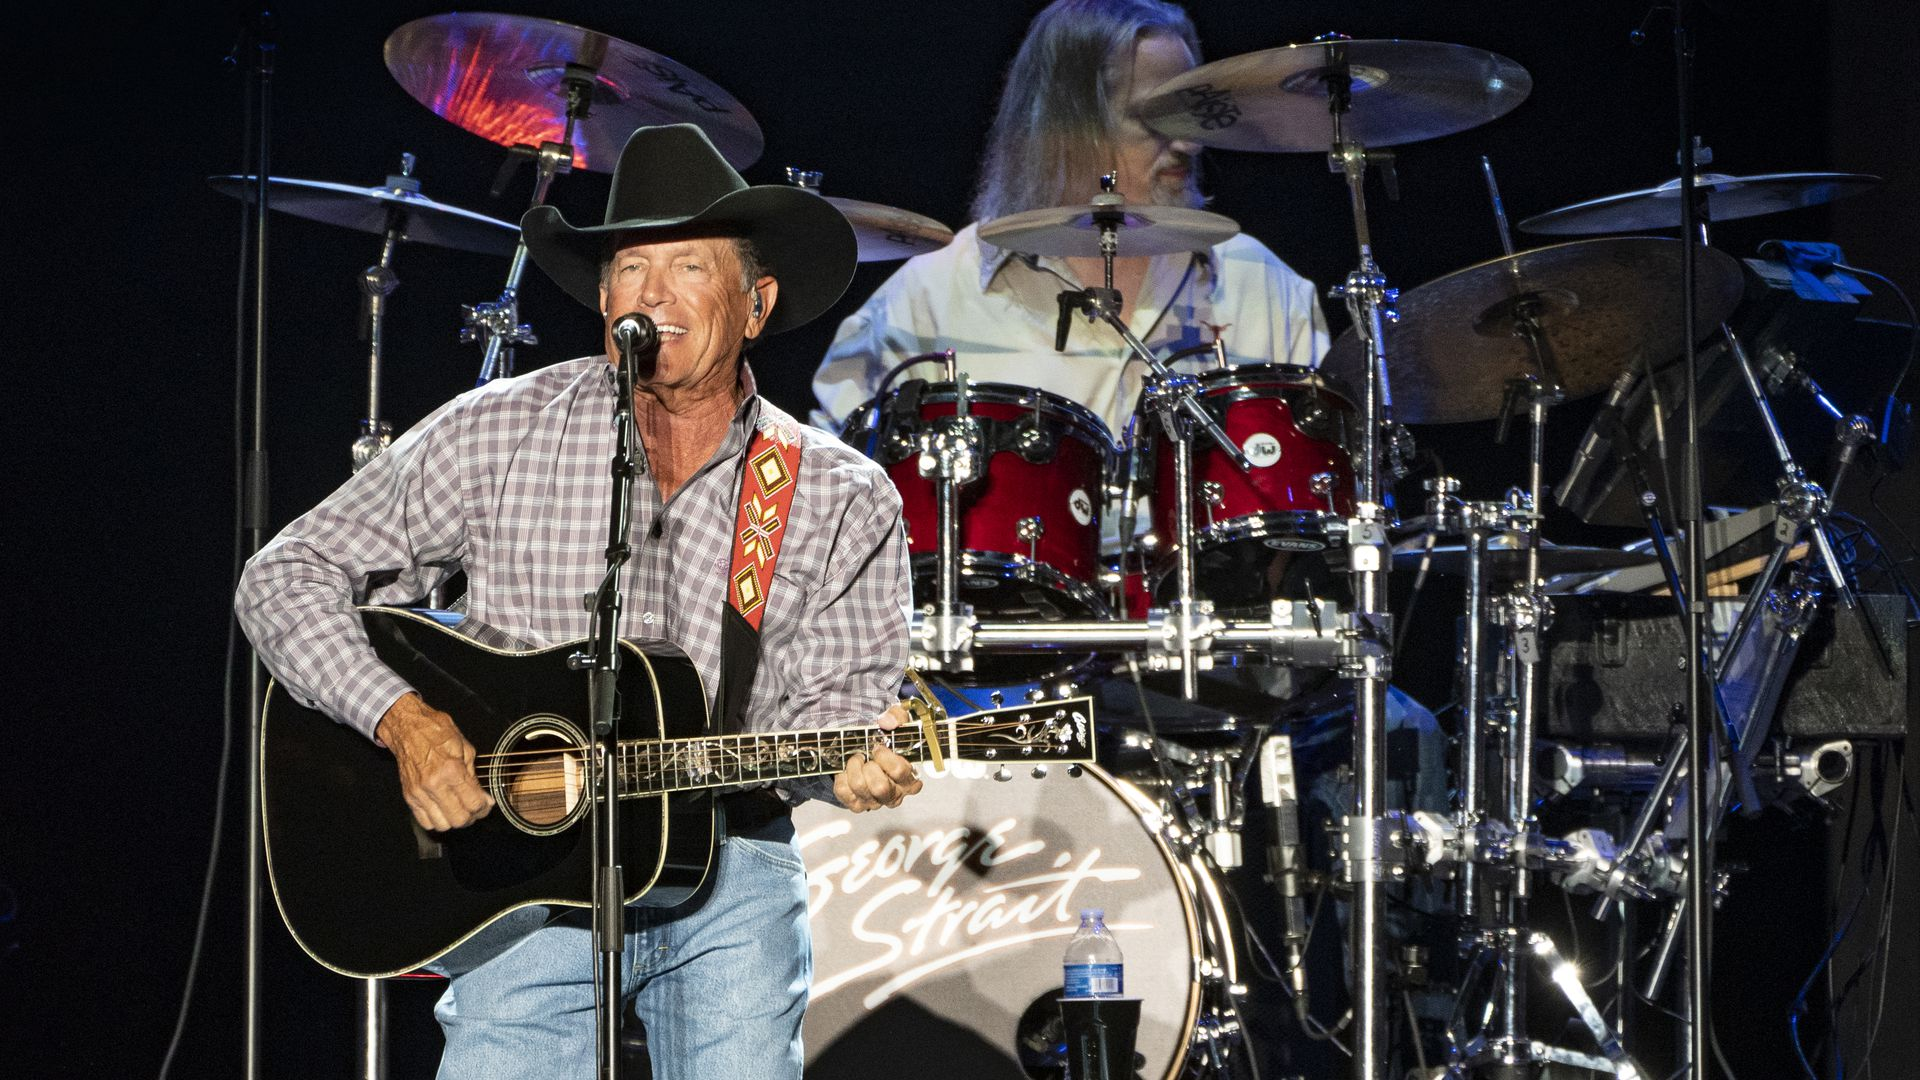 George Strait singing with a guitar in hand